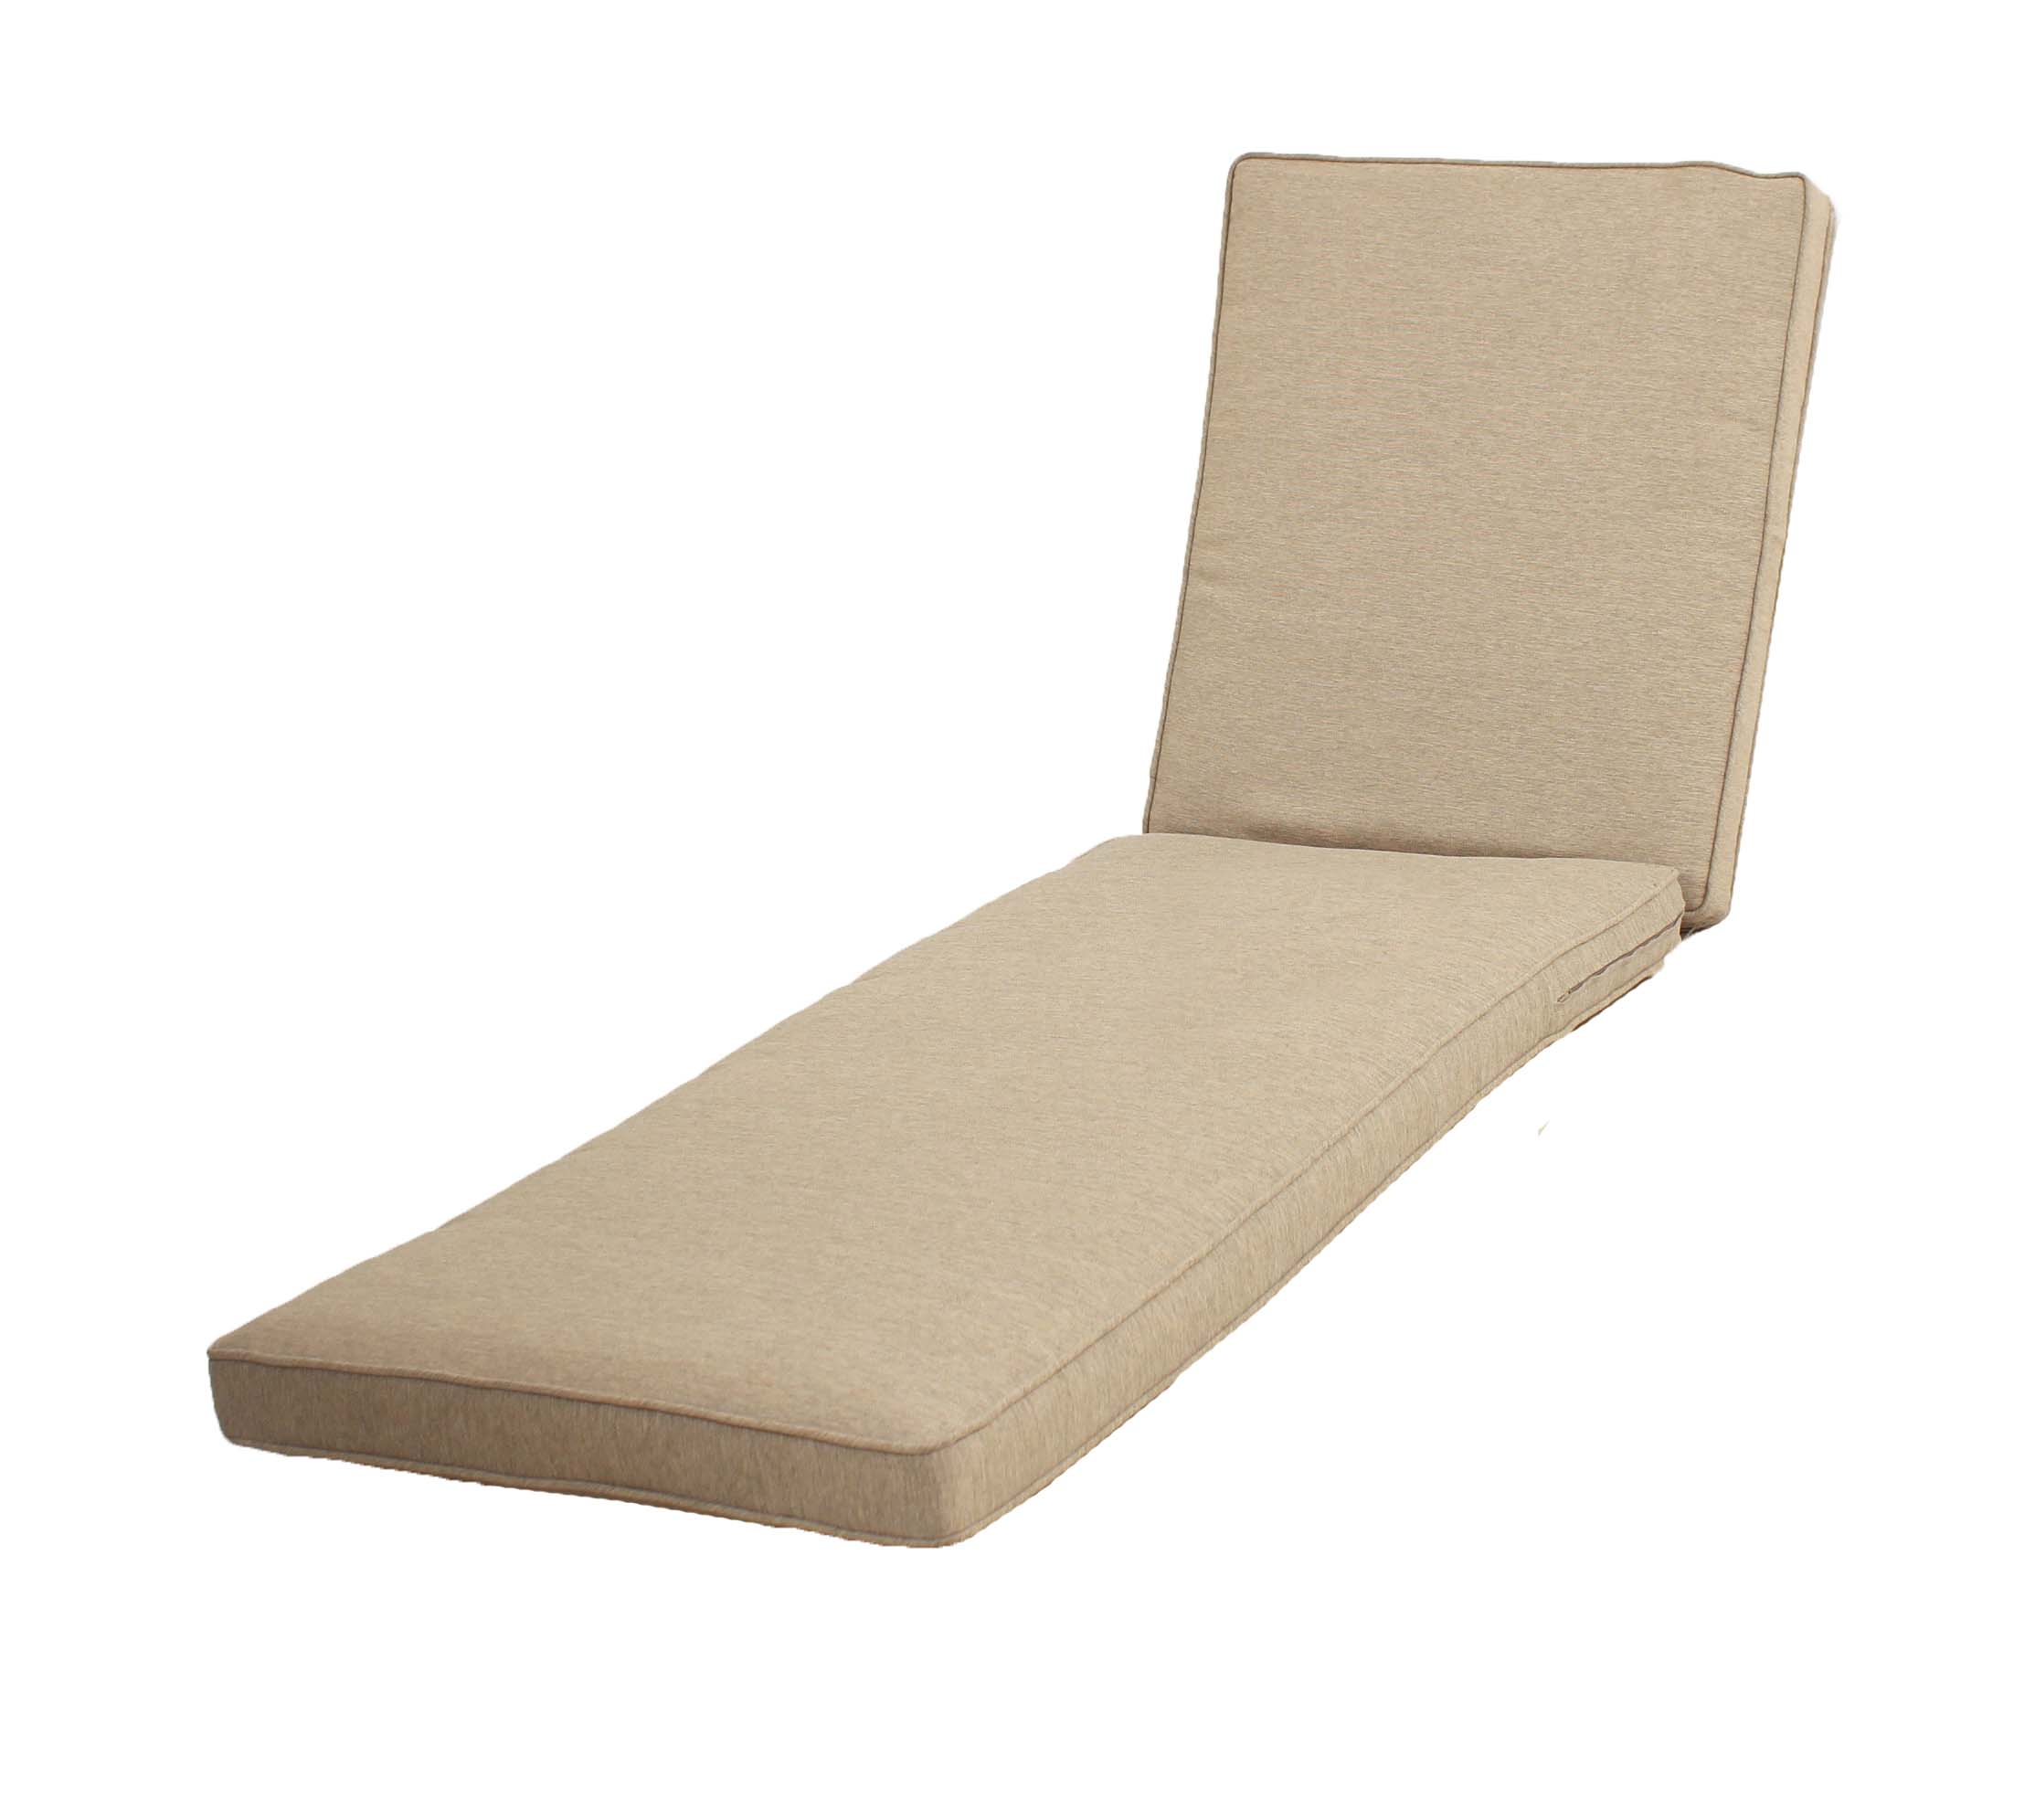 lounge chair cushions clearance industrial office chairs ty pennington style parkside replacement chaise cushion